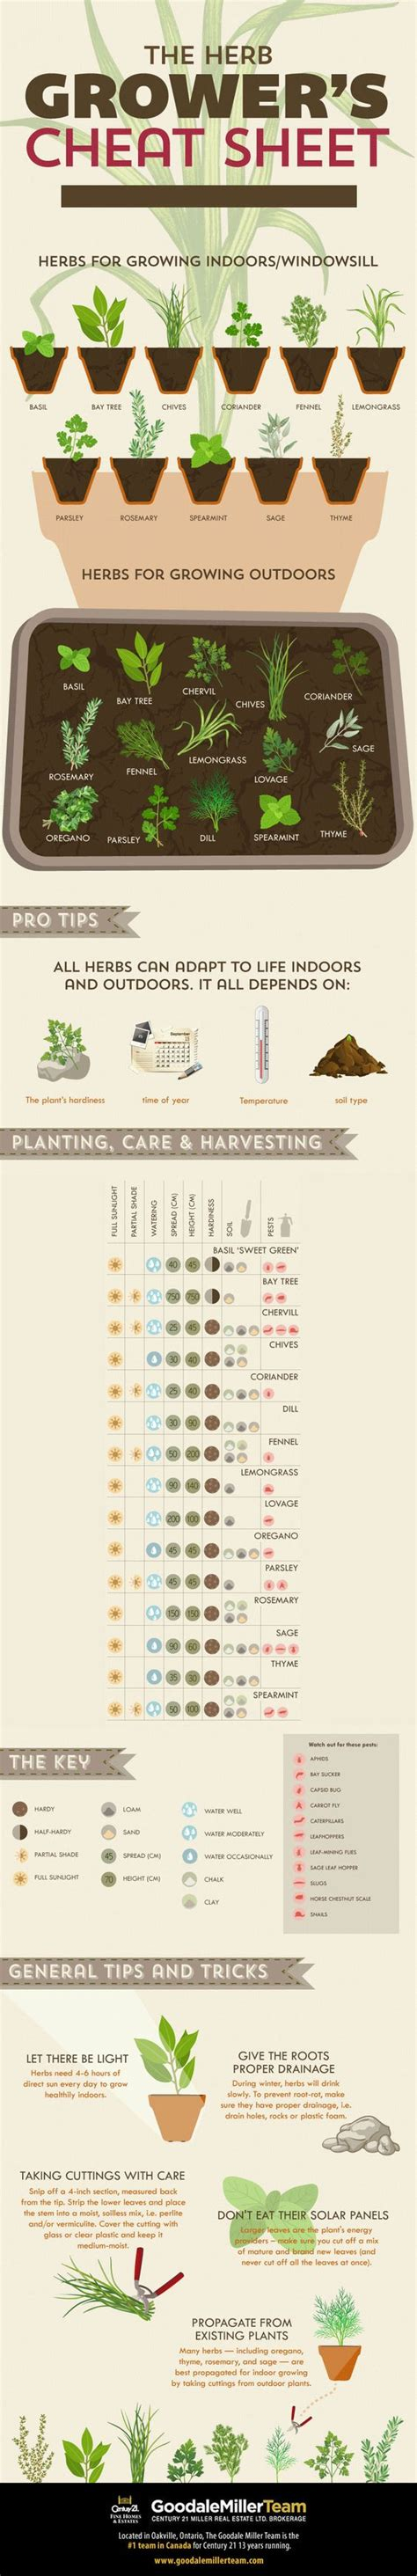 herb grower s cheat sheet the tiberian growdome system offices outdoors and